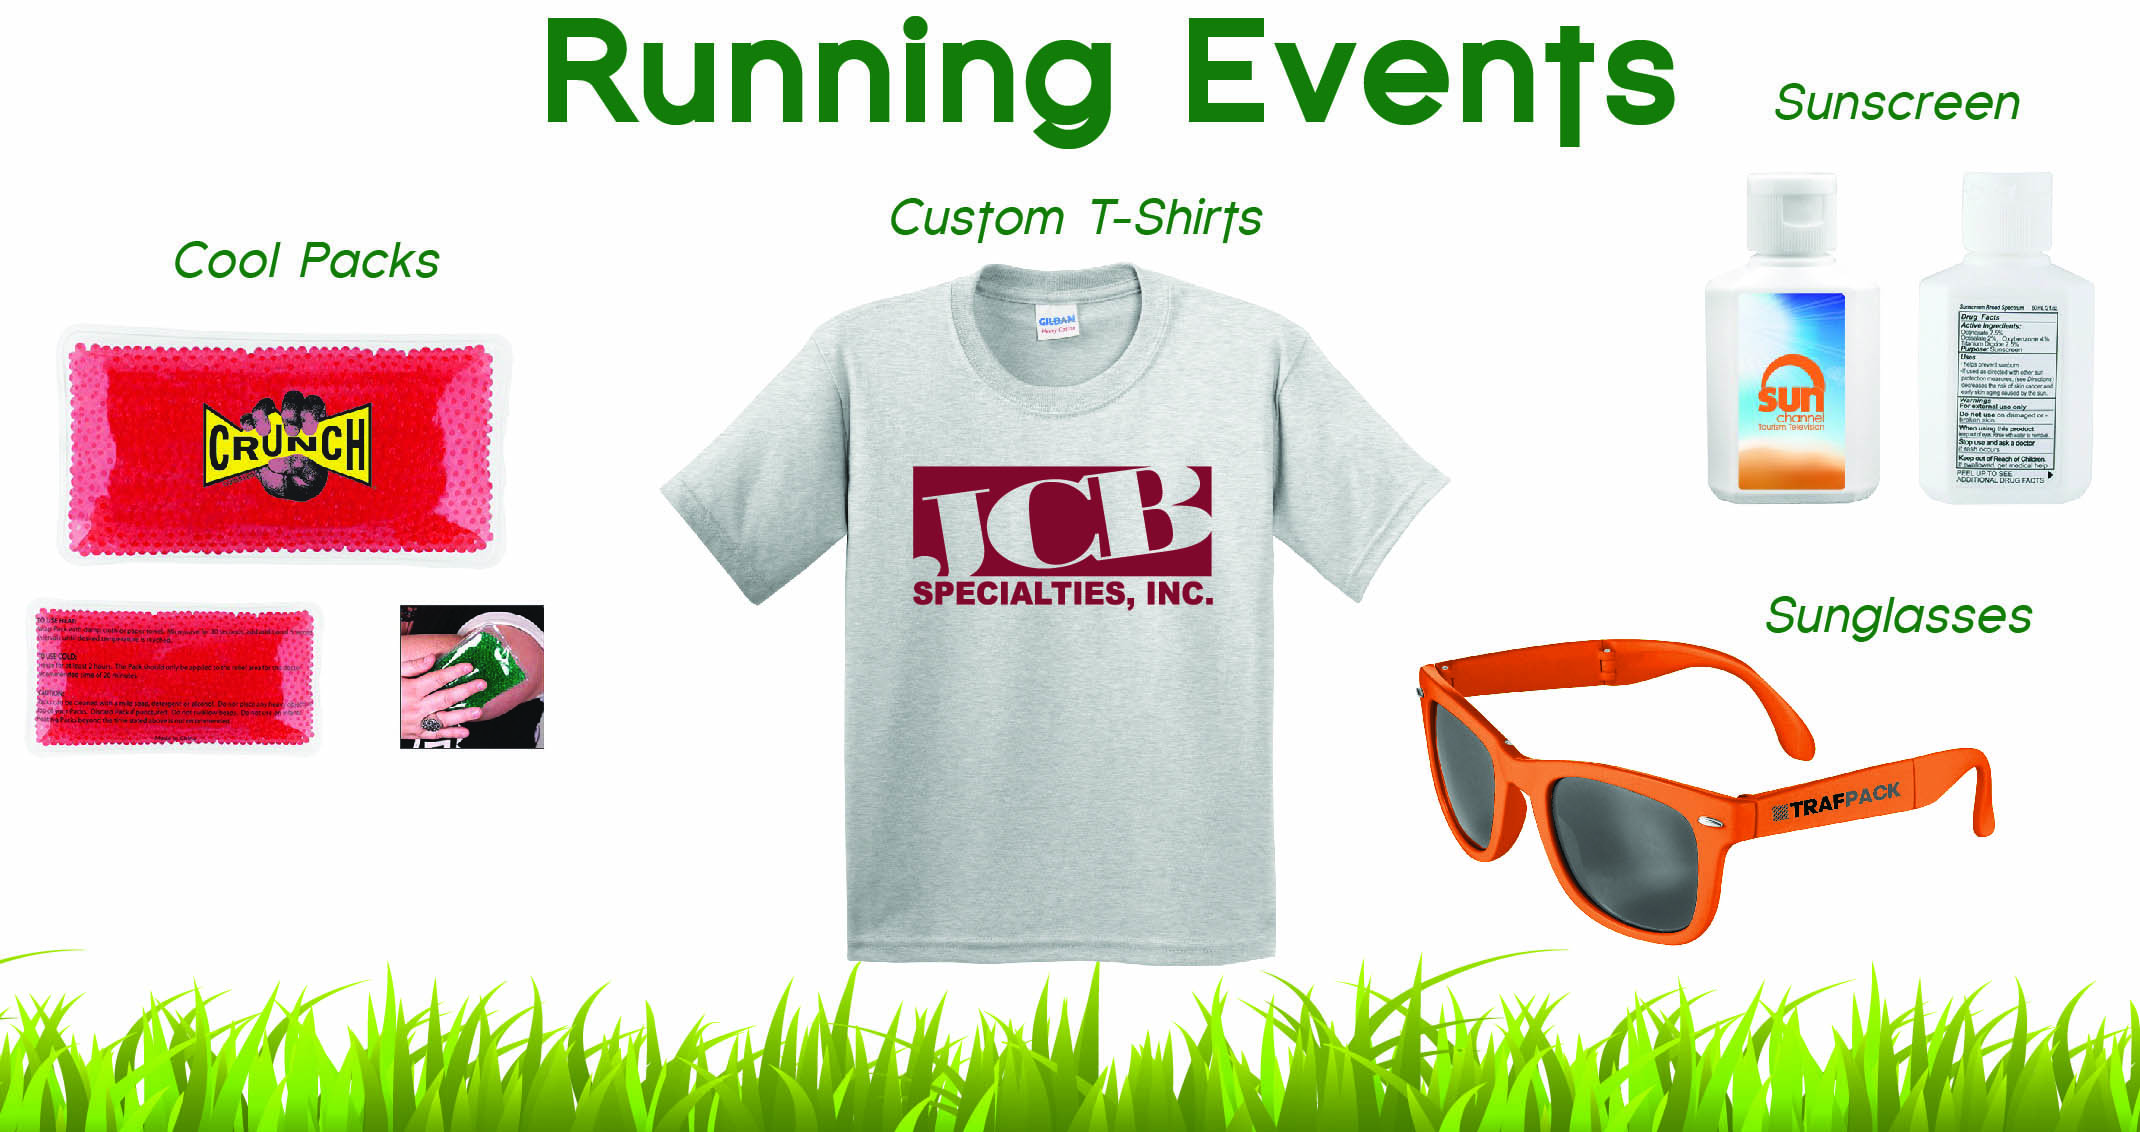 Jcb Specialties Screen Printing Albany Ny Embroidery Wiring Coupon Code Inc Can Custom Imprint Your Softball Jerseys Engrave The Medals And Trophies For Winners Also Embroider Duffle Bags That